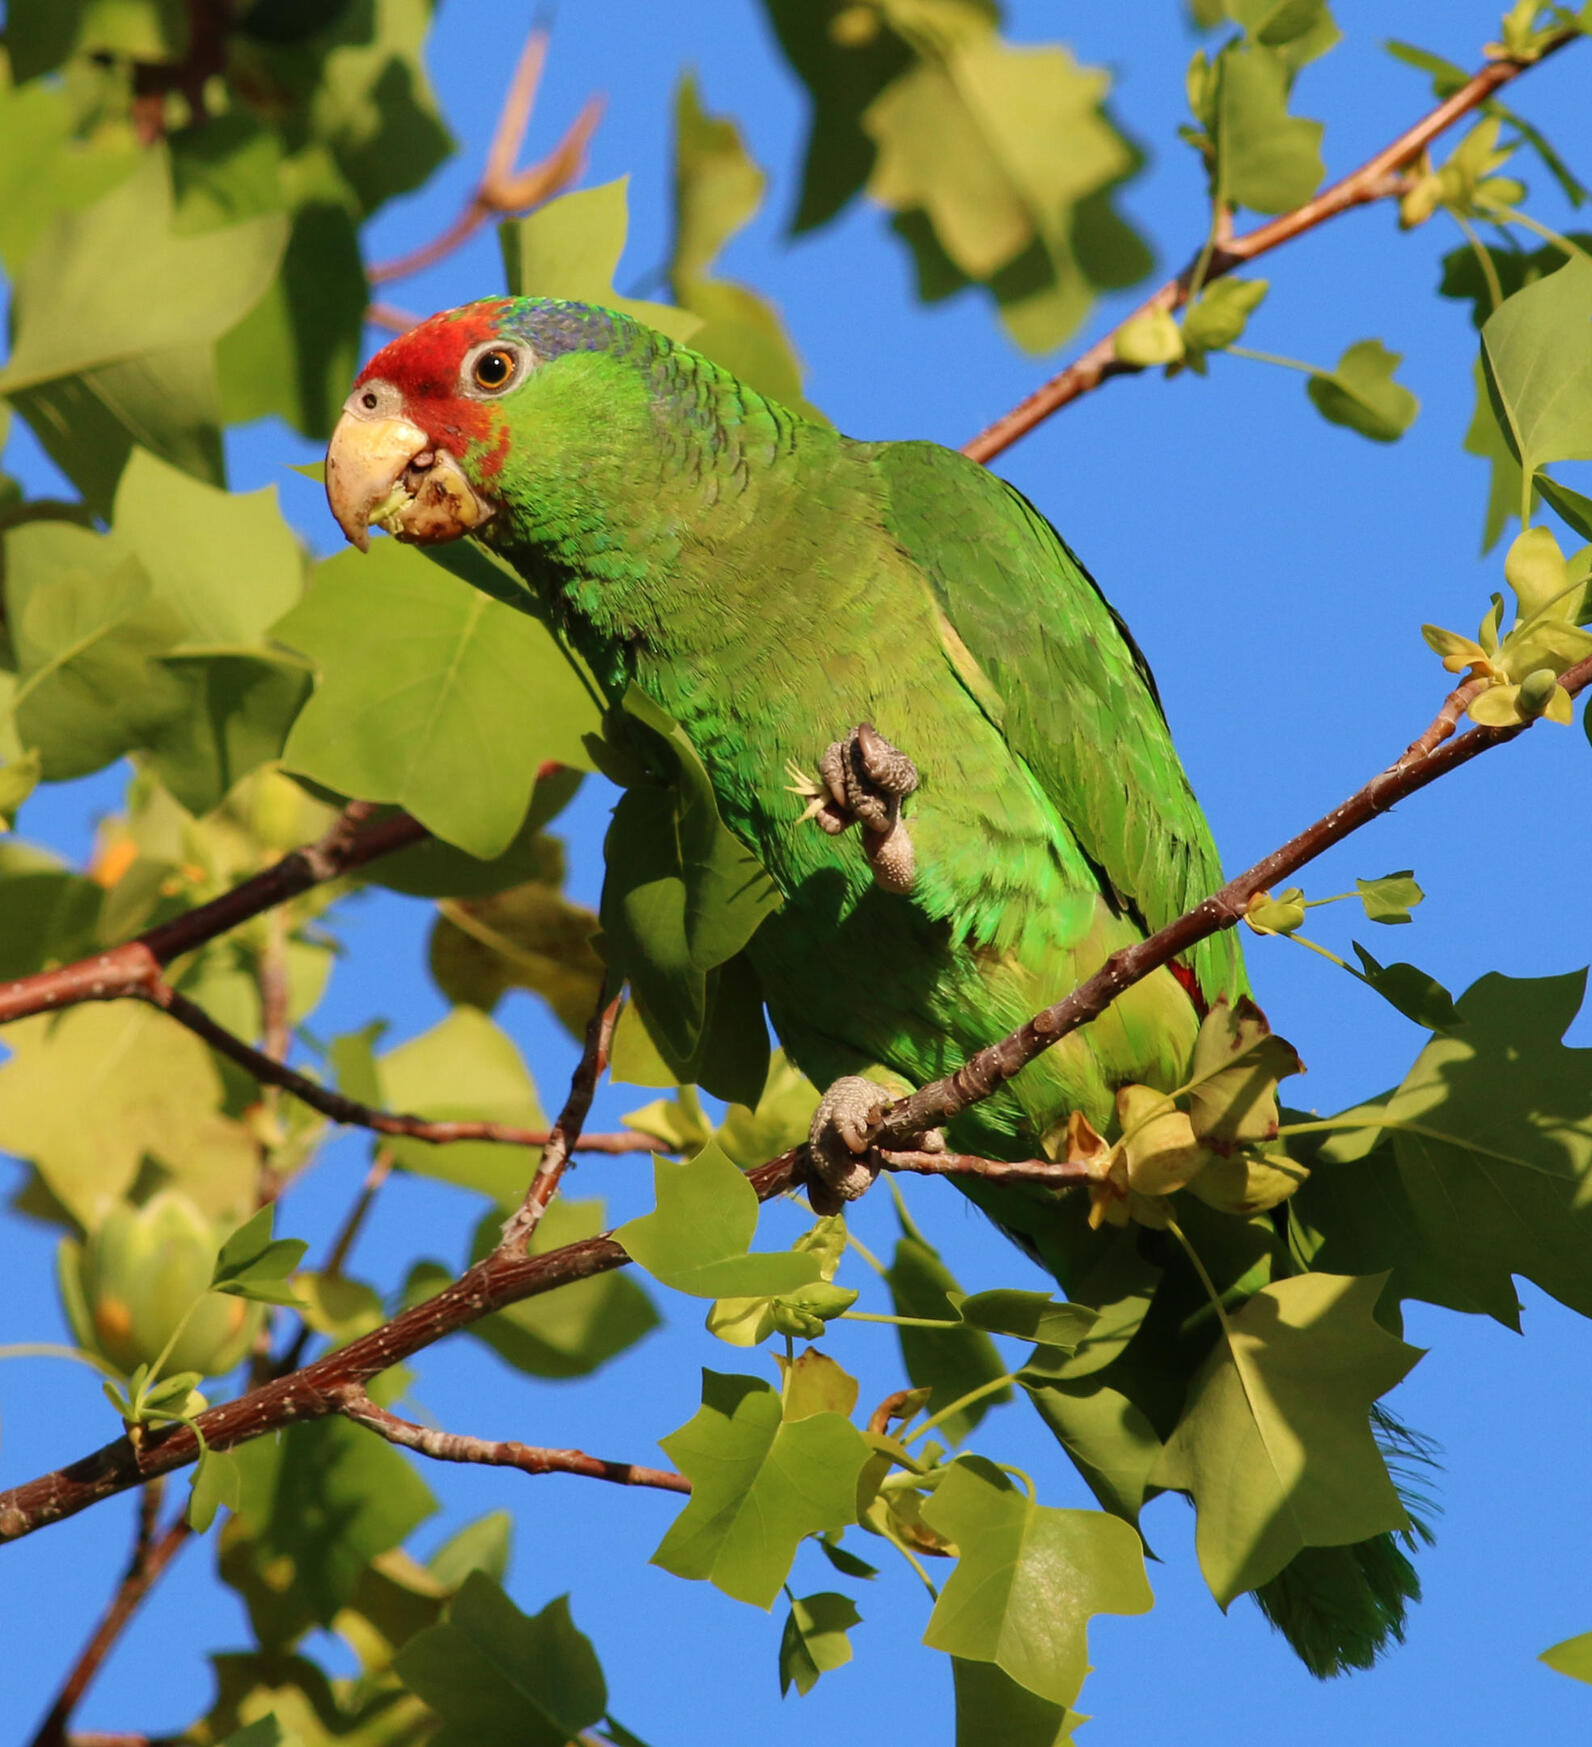 Red-crowned parrot in tree